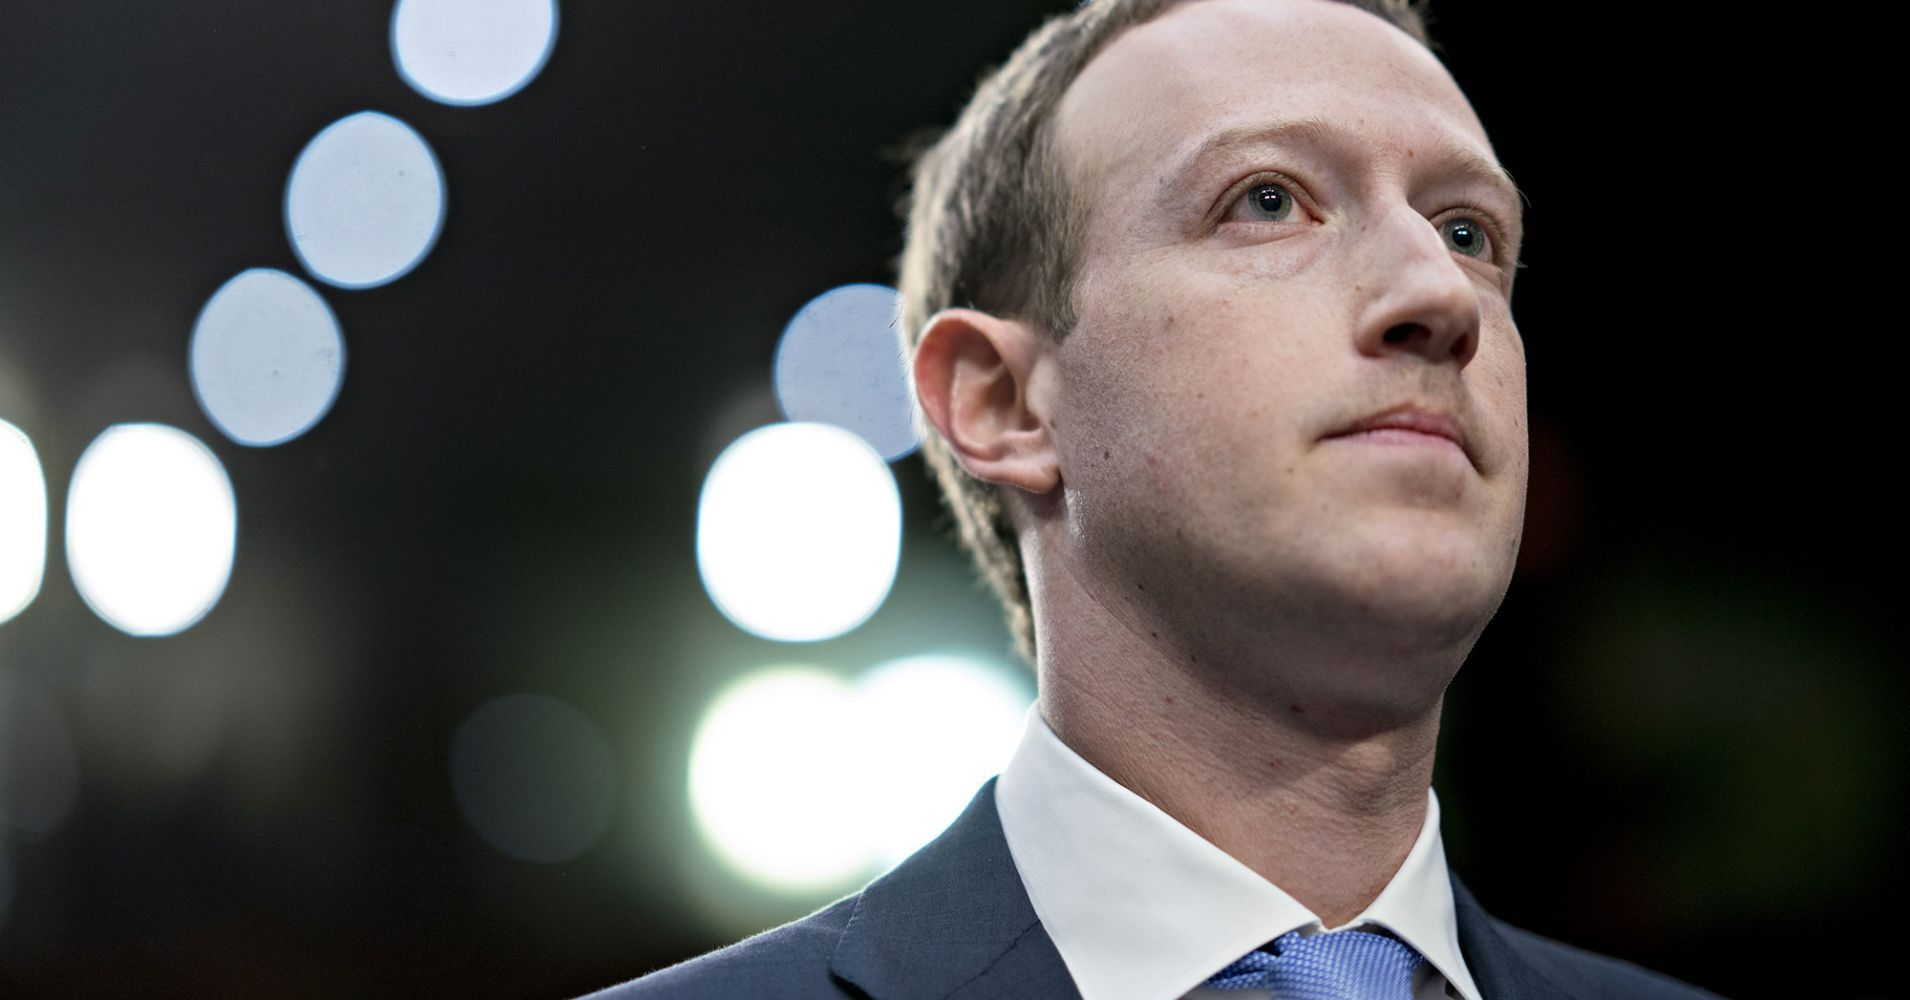 Facebook shares whipsaw after mixed earnings report